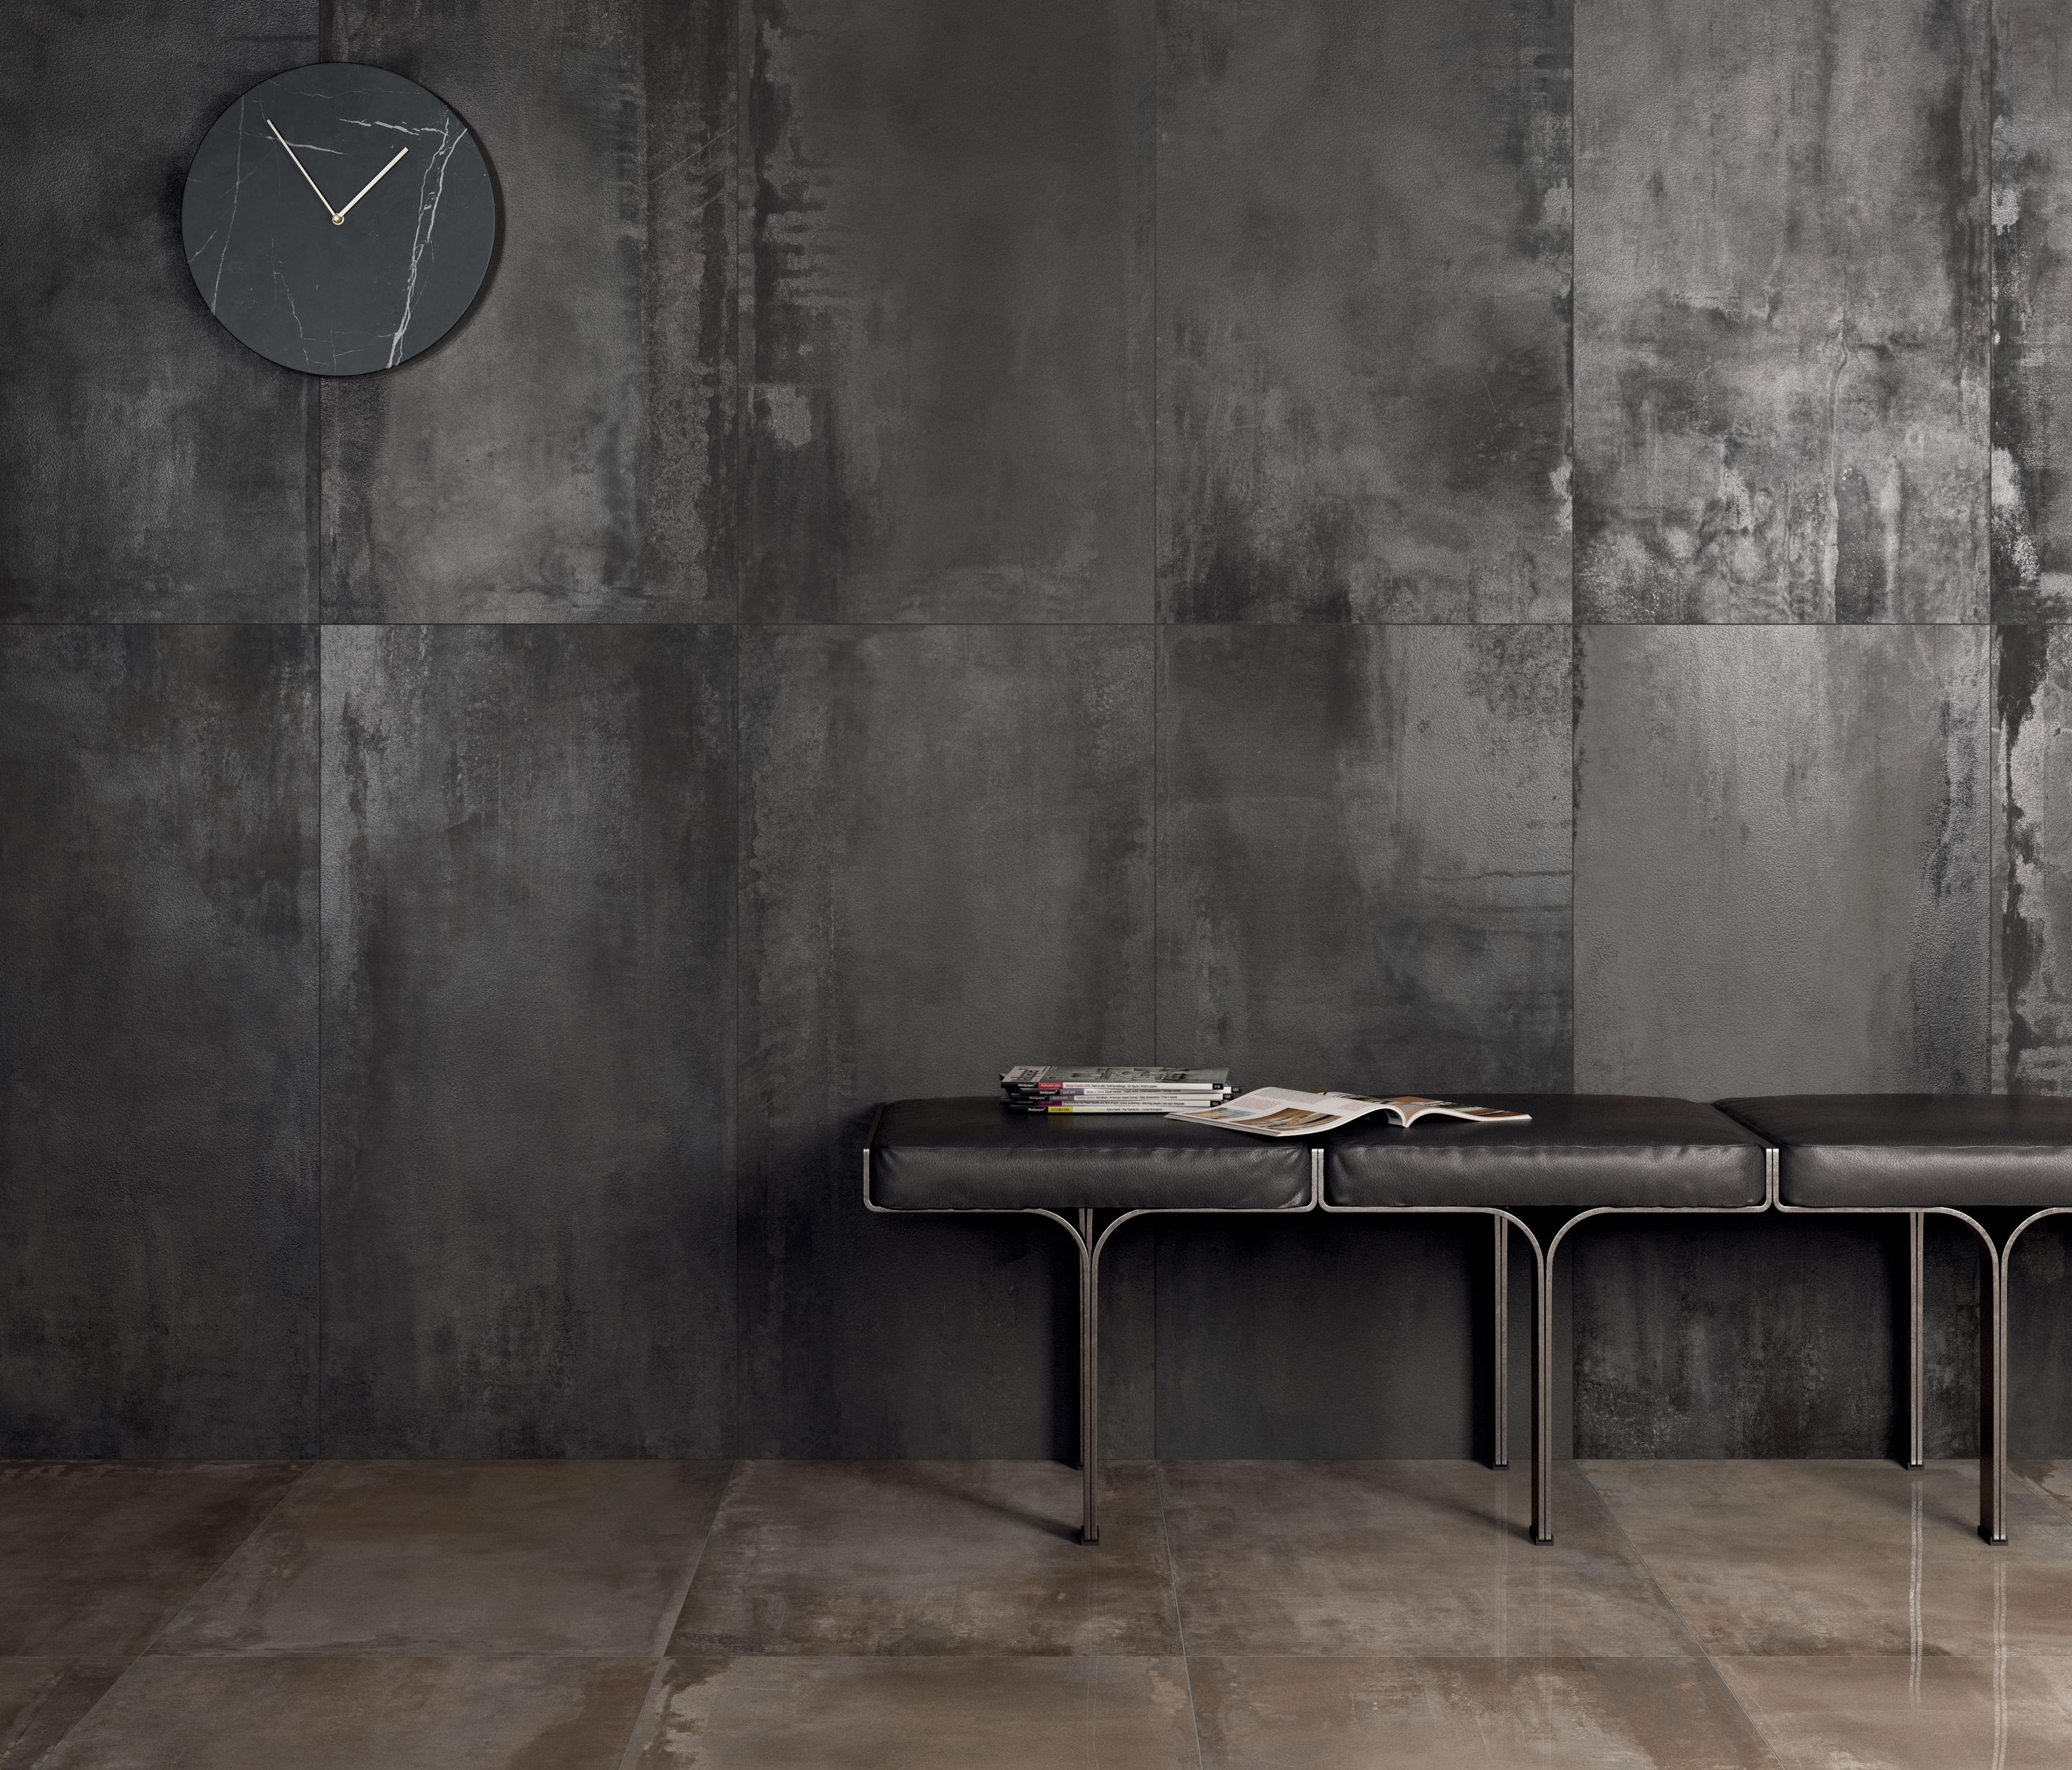 INTERNO 9 DARK - Ceramic Tiles From ABK Group